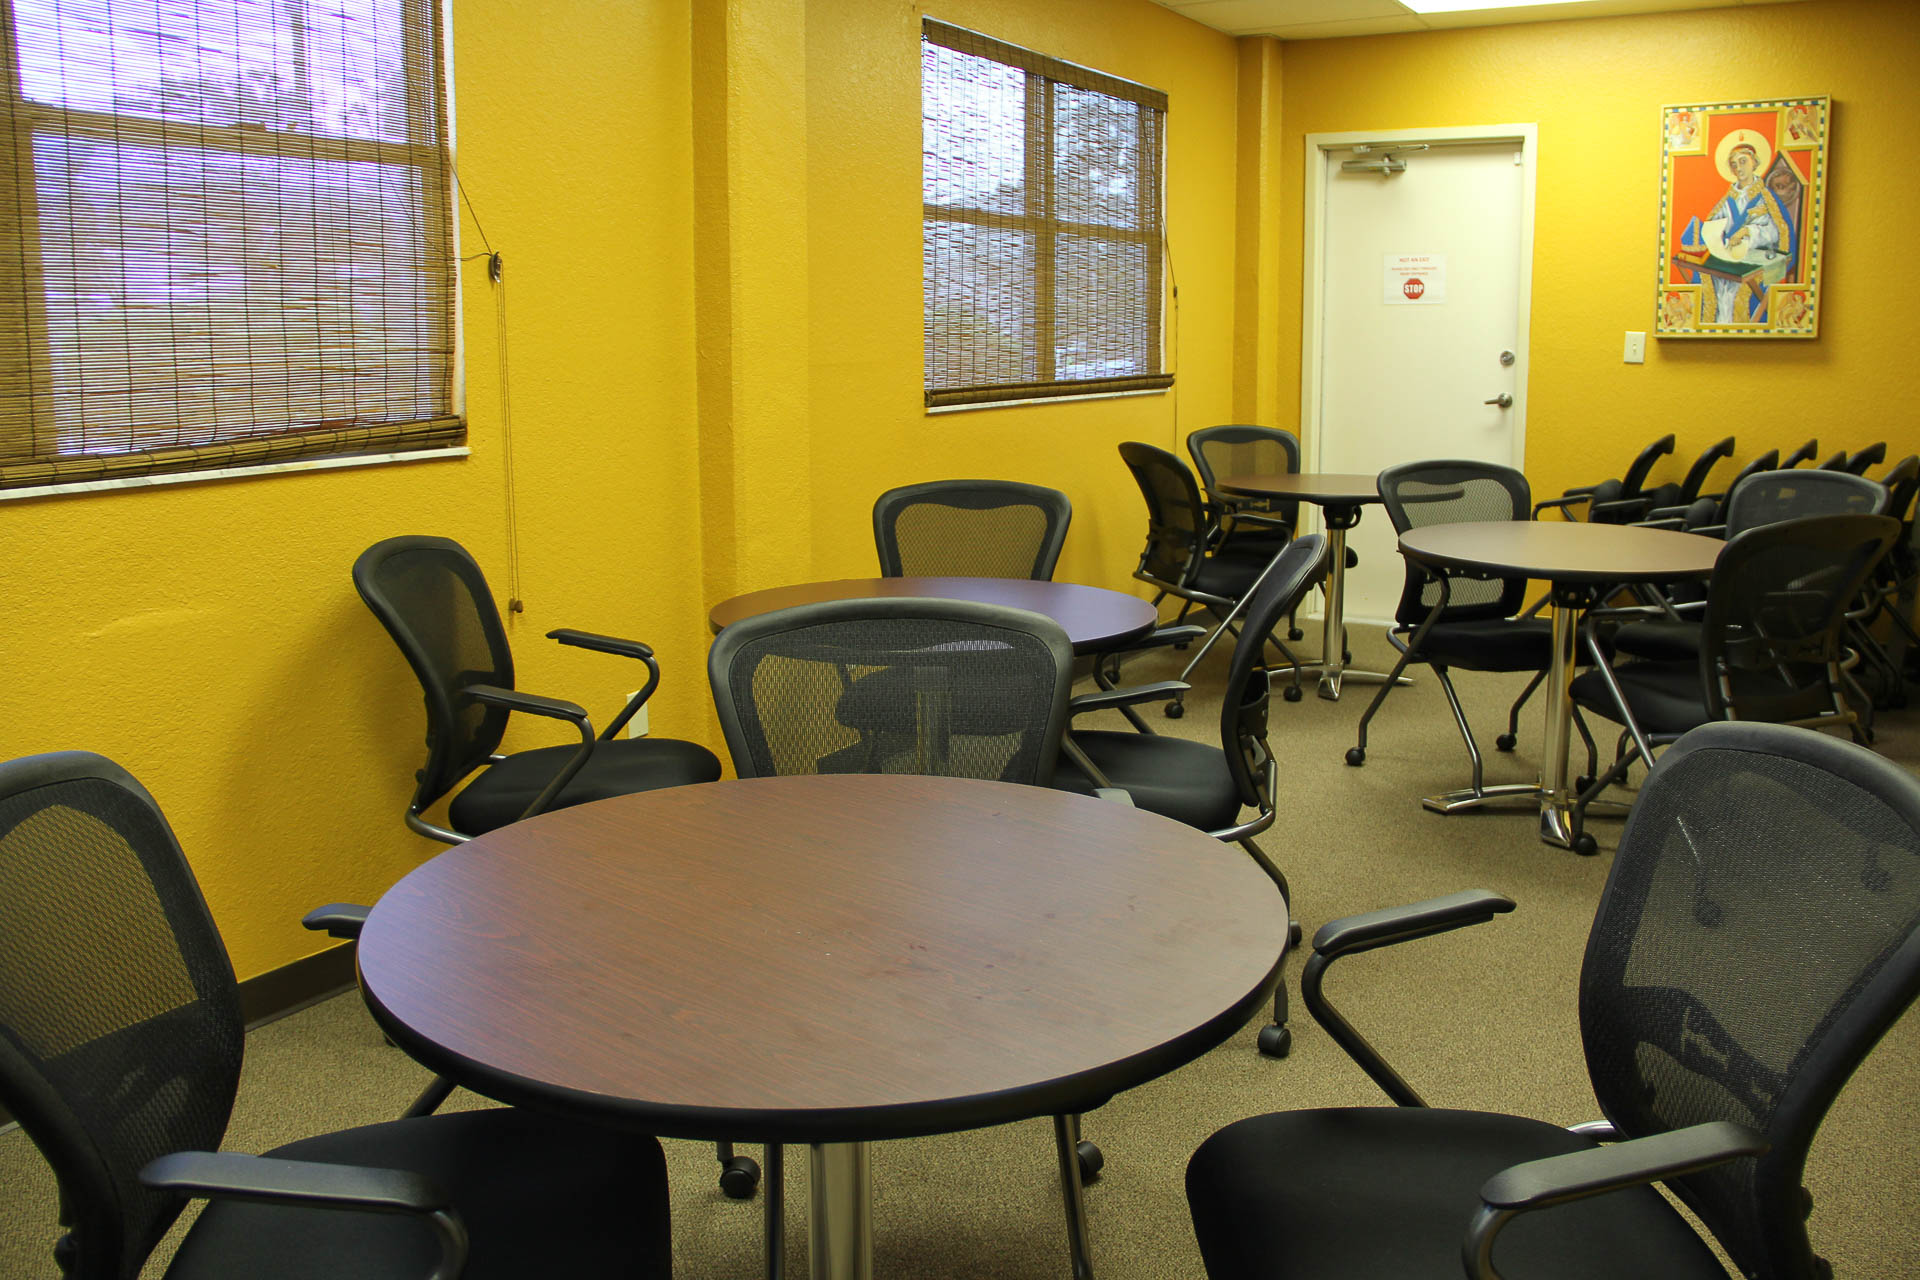 st-anselms-episcopal-center-multipurpose-room-05